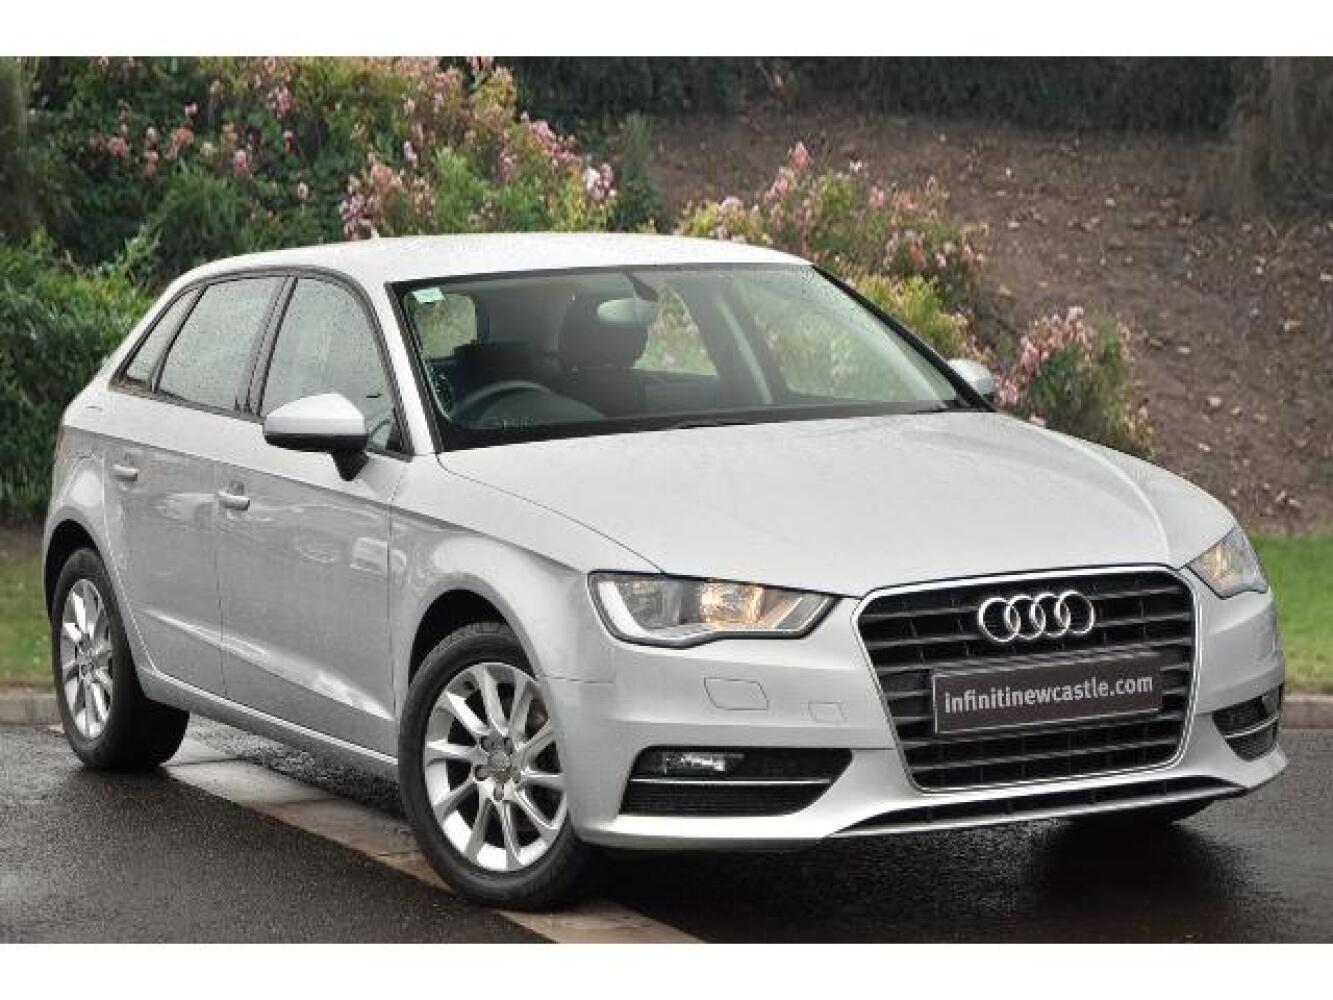 used audi a3 1 6 tdi se 5dr diesel hatchback for sale newcastle infiniti. Black Bedroom Furniture Sets. Home Design Ideas